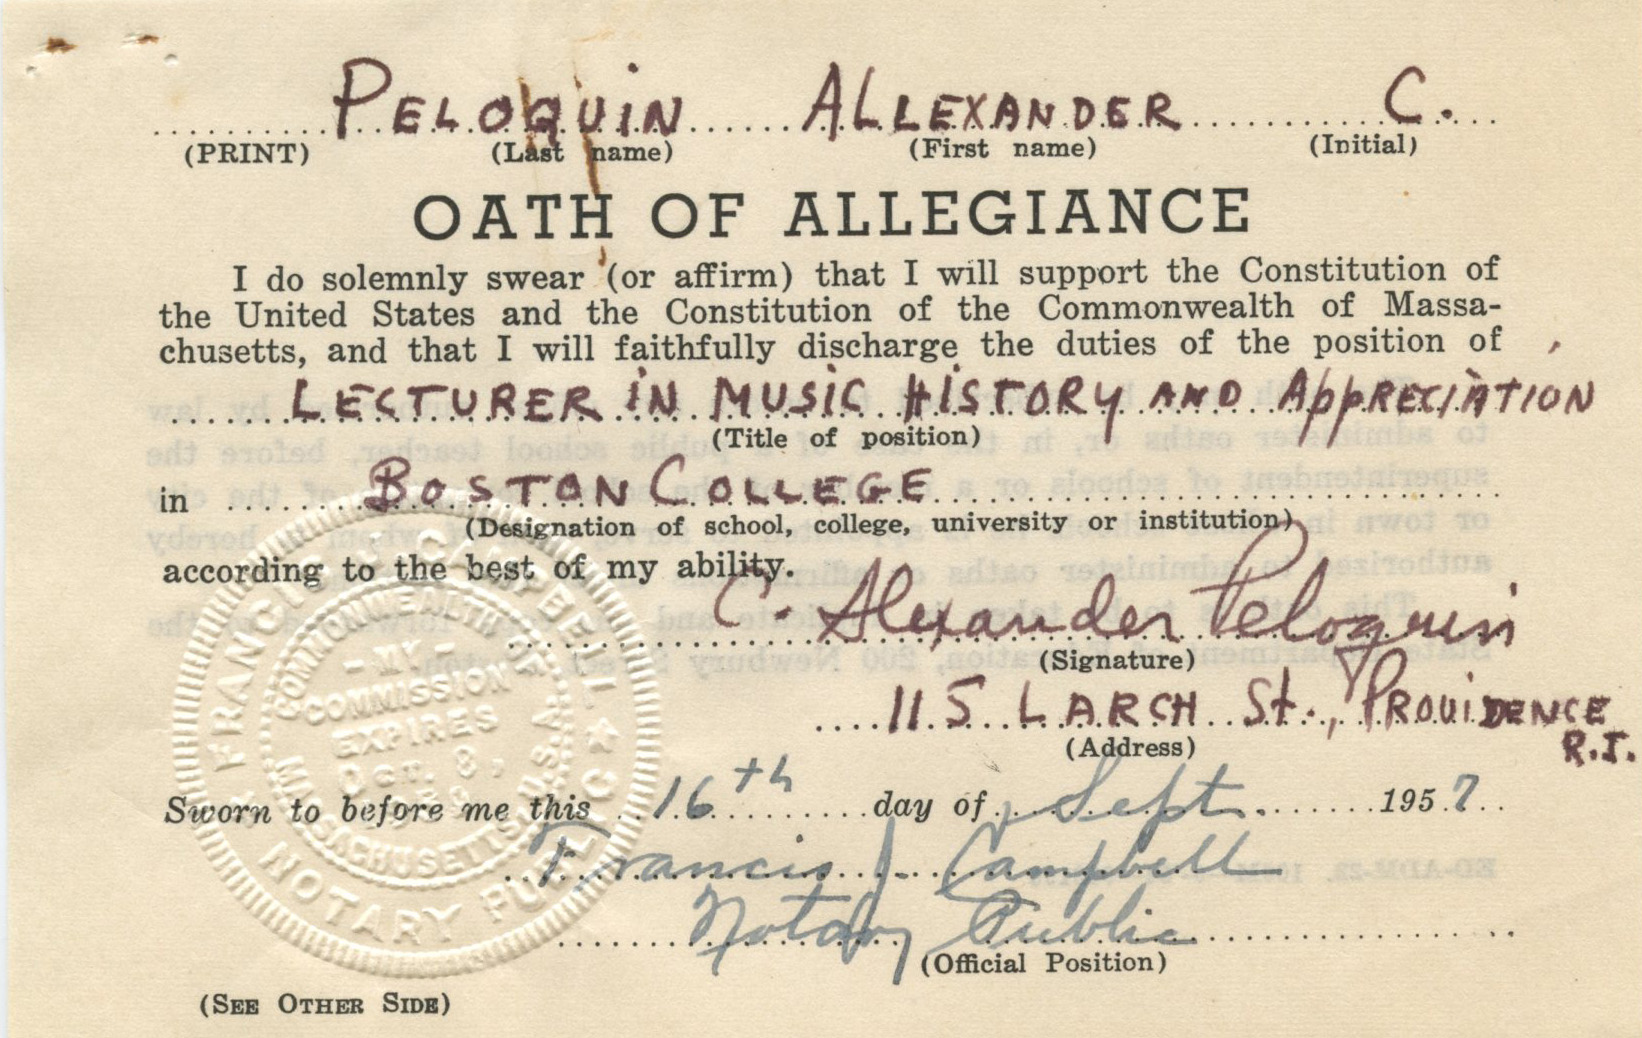 Composer and Boston College lecturer Alexander C. Peloquin's oath of  allegiance, Box 13,